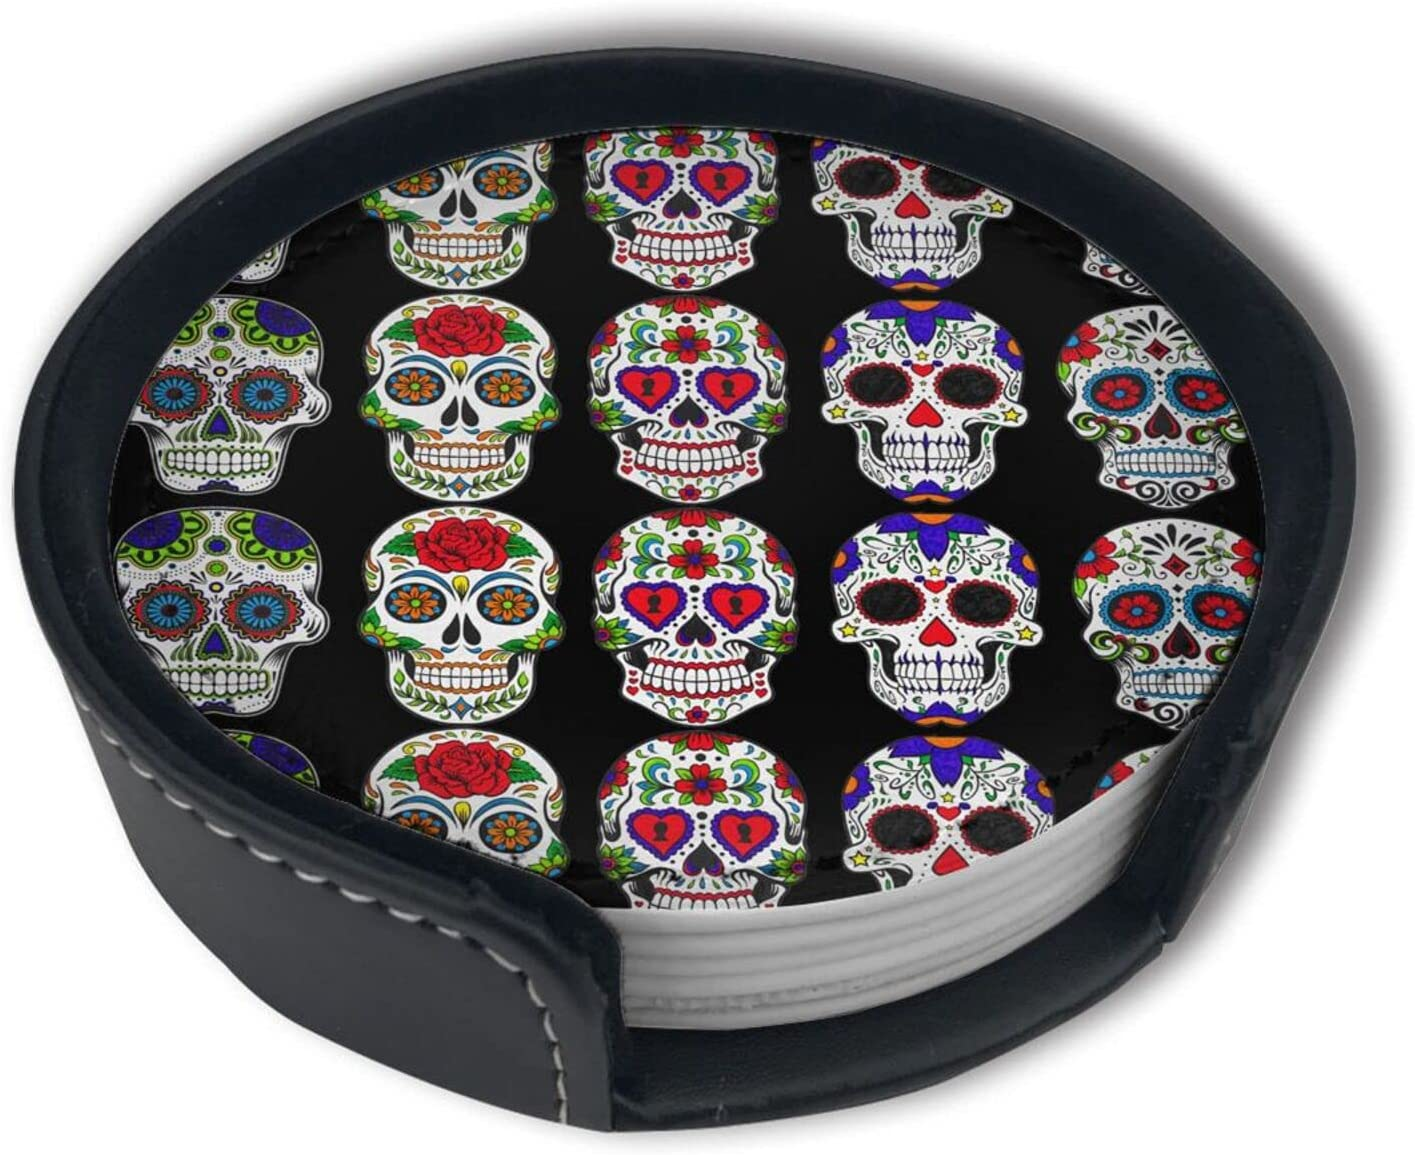 The Dead Skull Flower Art Leather Ranking TOP20 Drinks Coasters W For